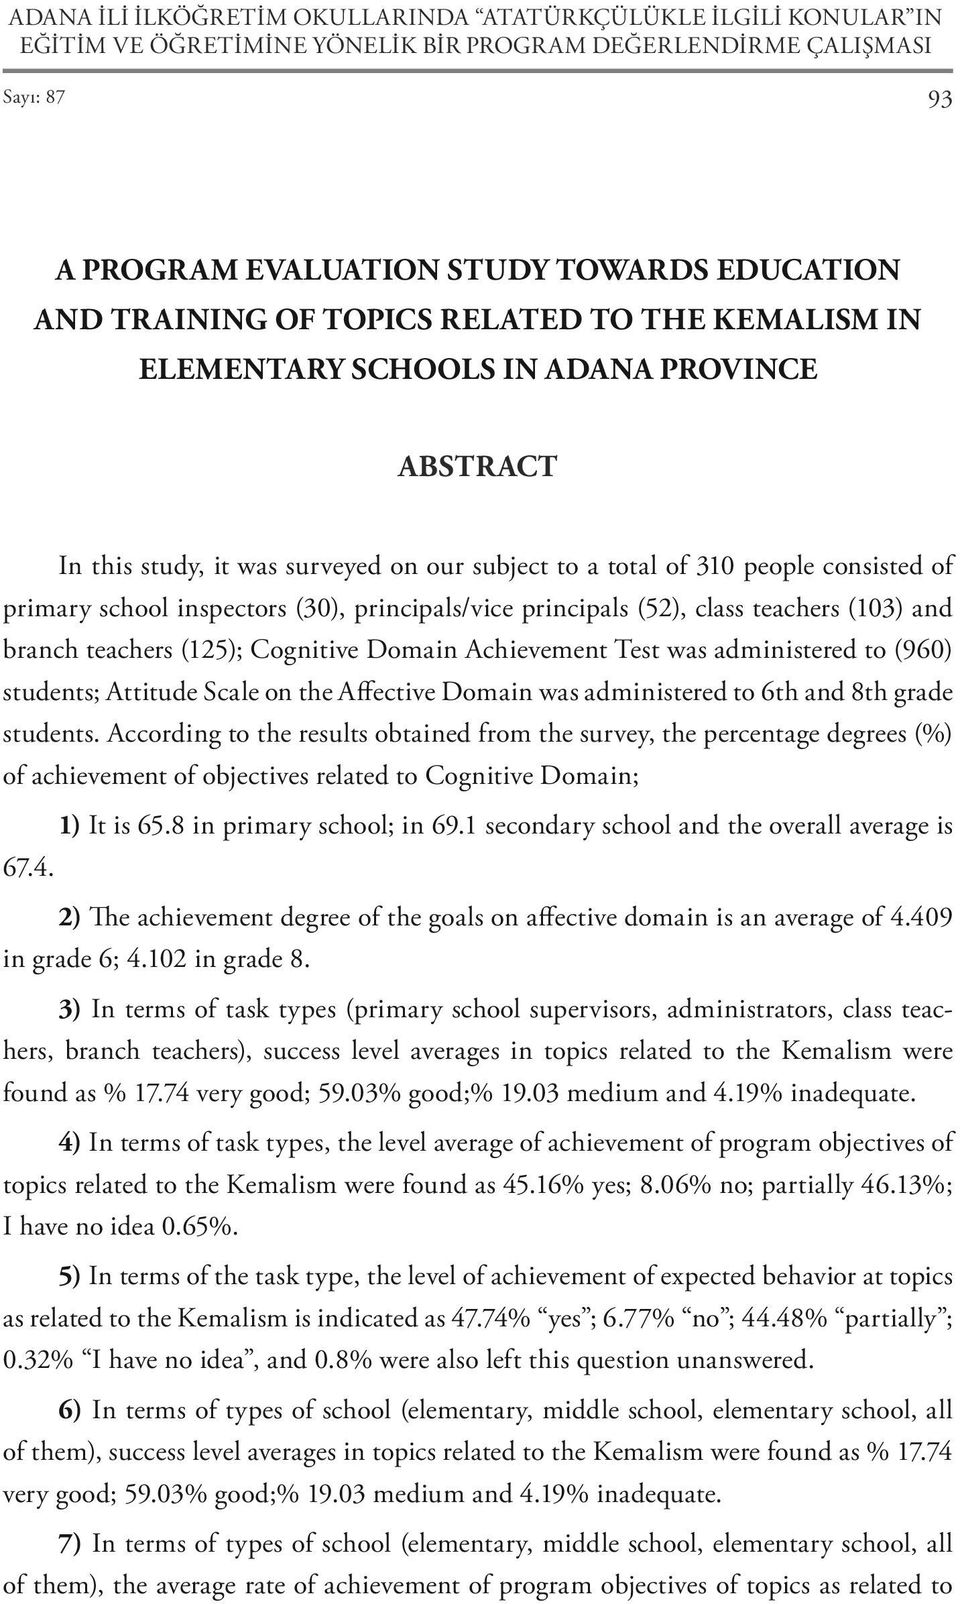 inspectors (30), principals/vice principals (52), class teachers (103) and branch teachers (125); Cognitive Domain Achievement Test was administered to (960) students; Attitude Scale on the Affective